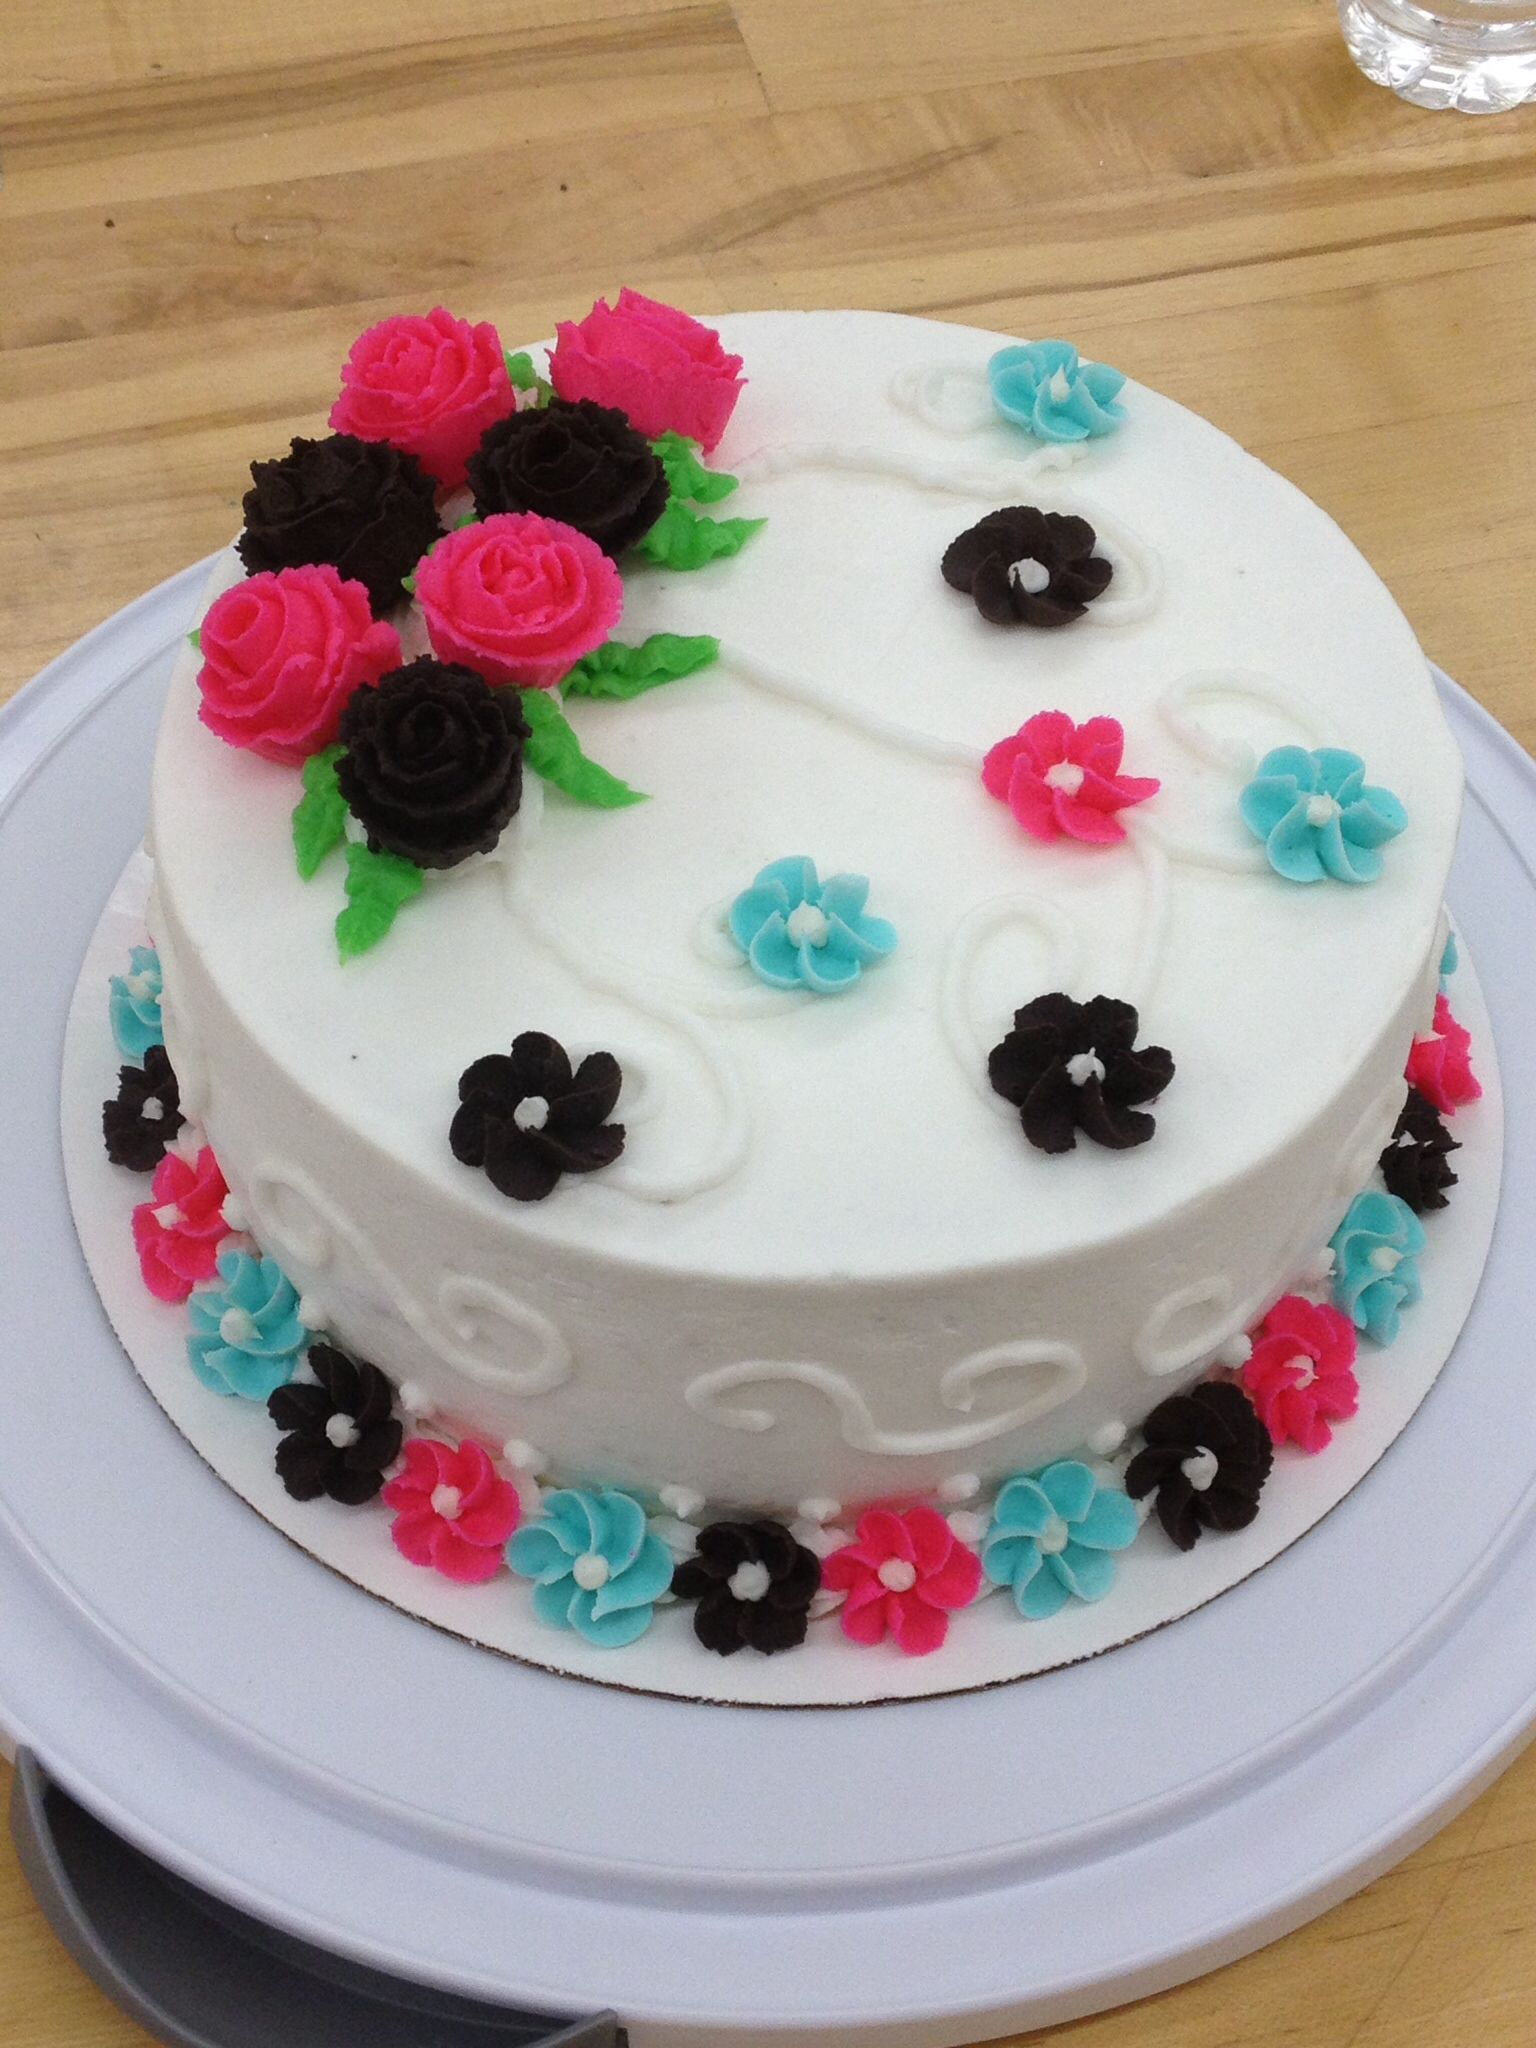 Michaels Cake Decorating Class Sign Up Simple My Wilton Course 1 Final Cake  Decorated Cakes  Pinterest 2018